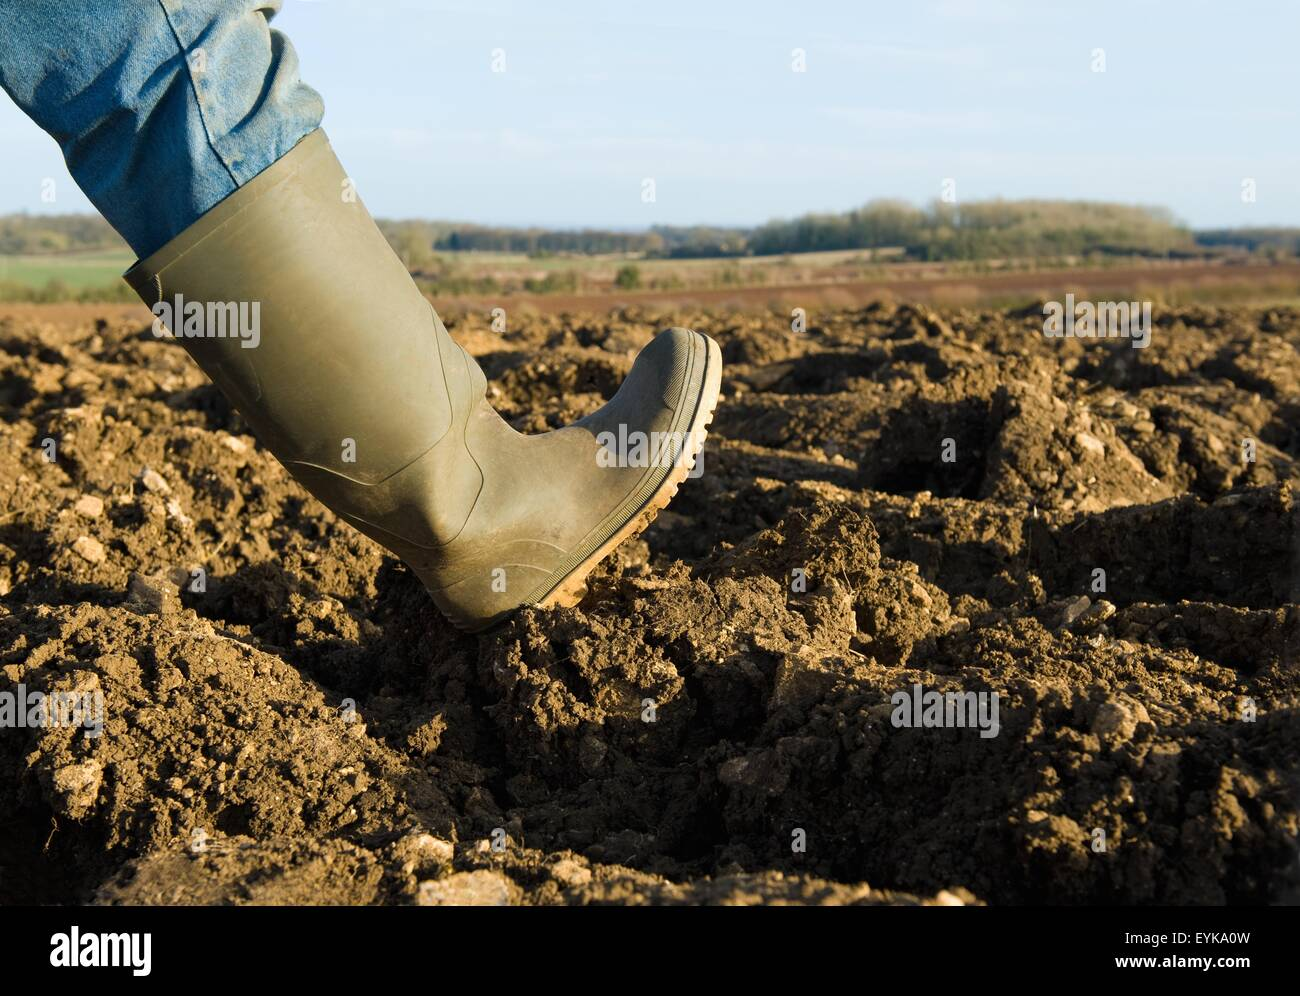 Close up of farmers rubber boot walking on ploughed field Stock Photo